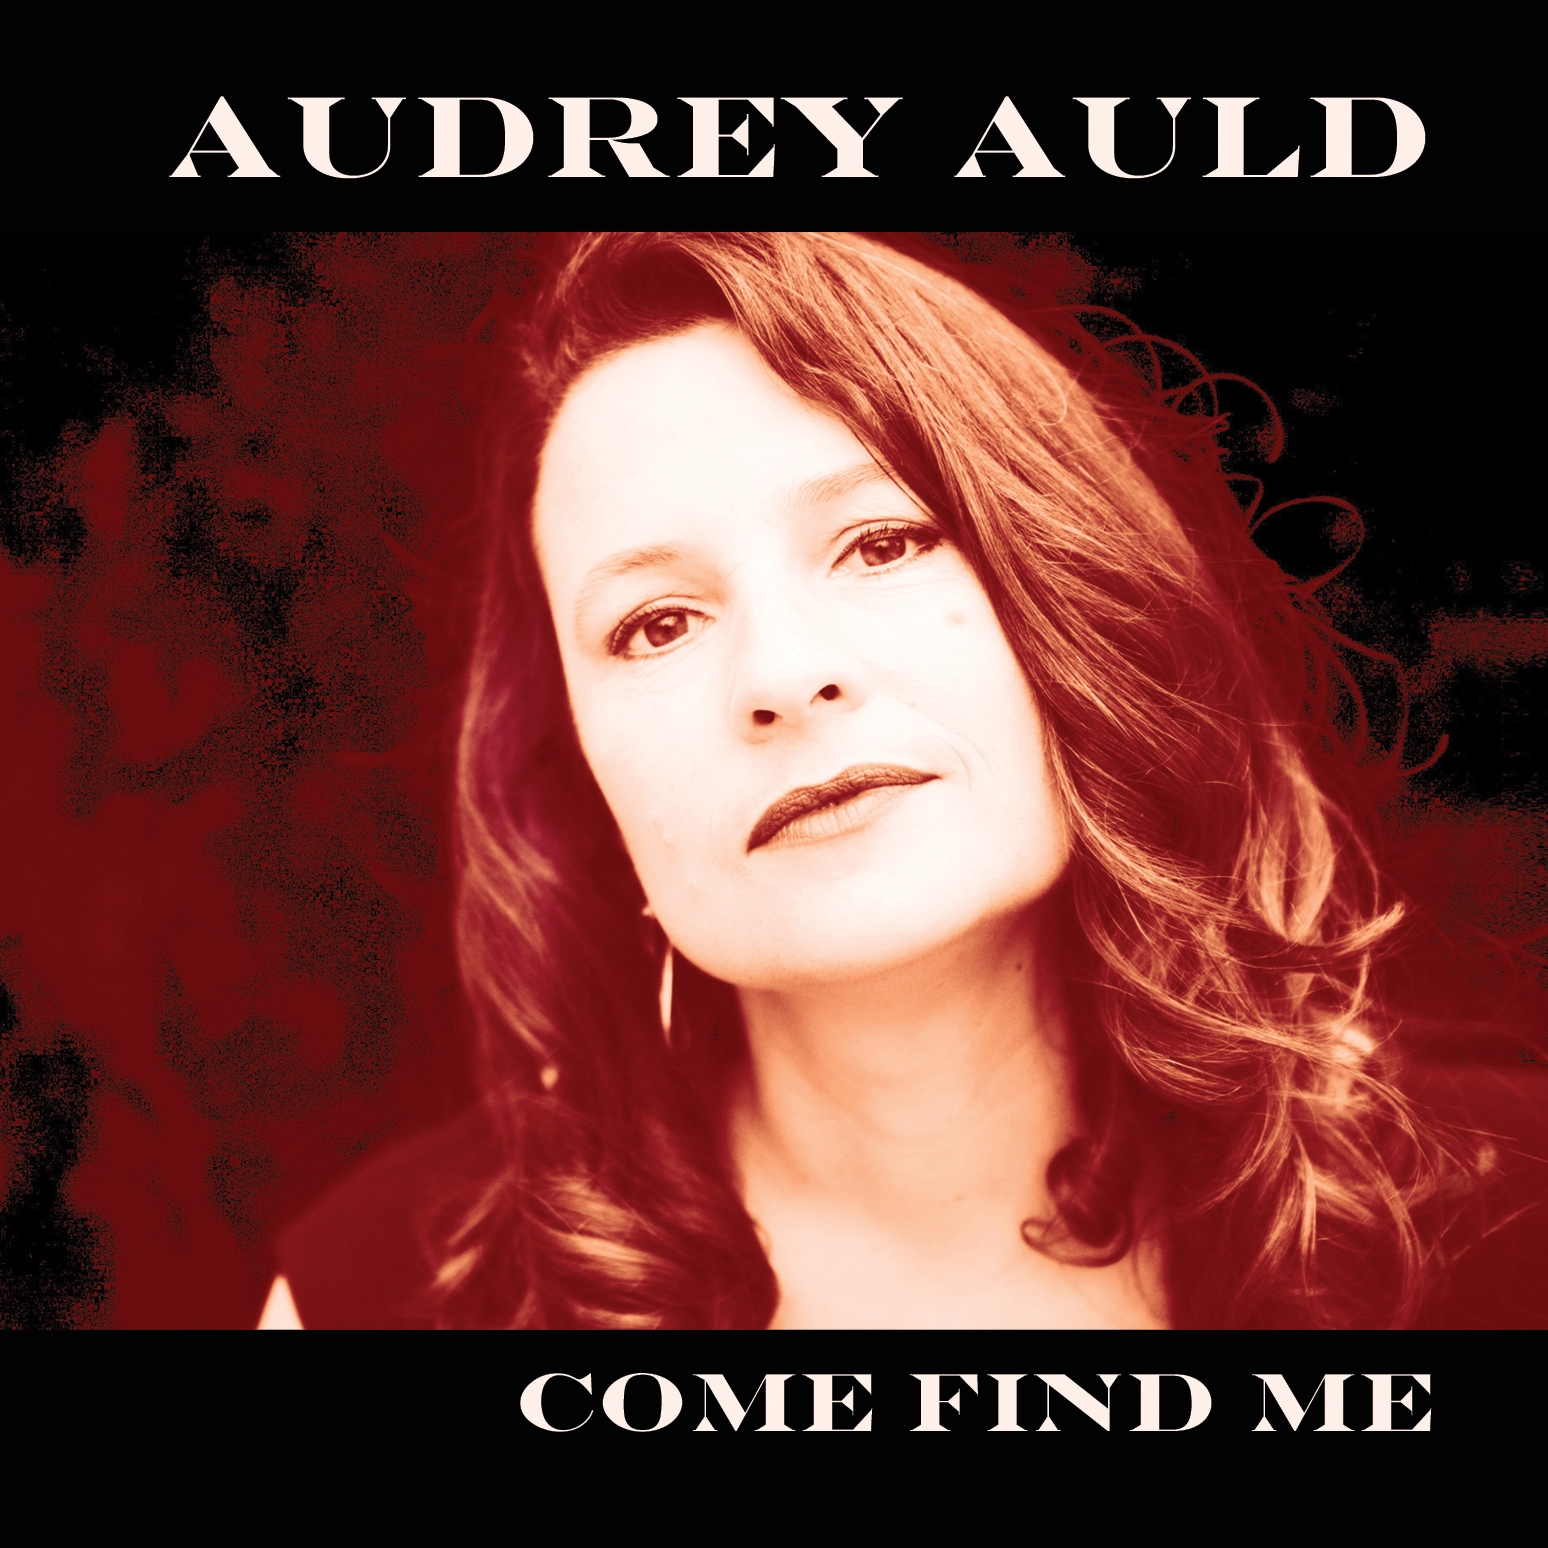 Audrey Auld - Come Find Me cover art